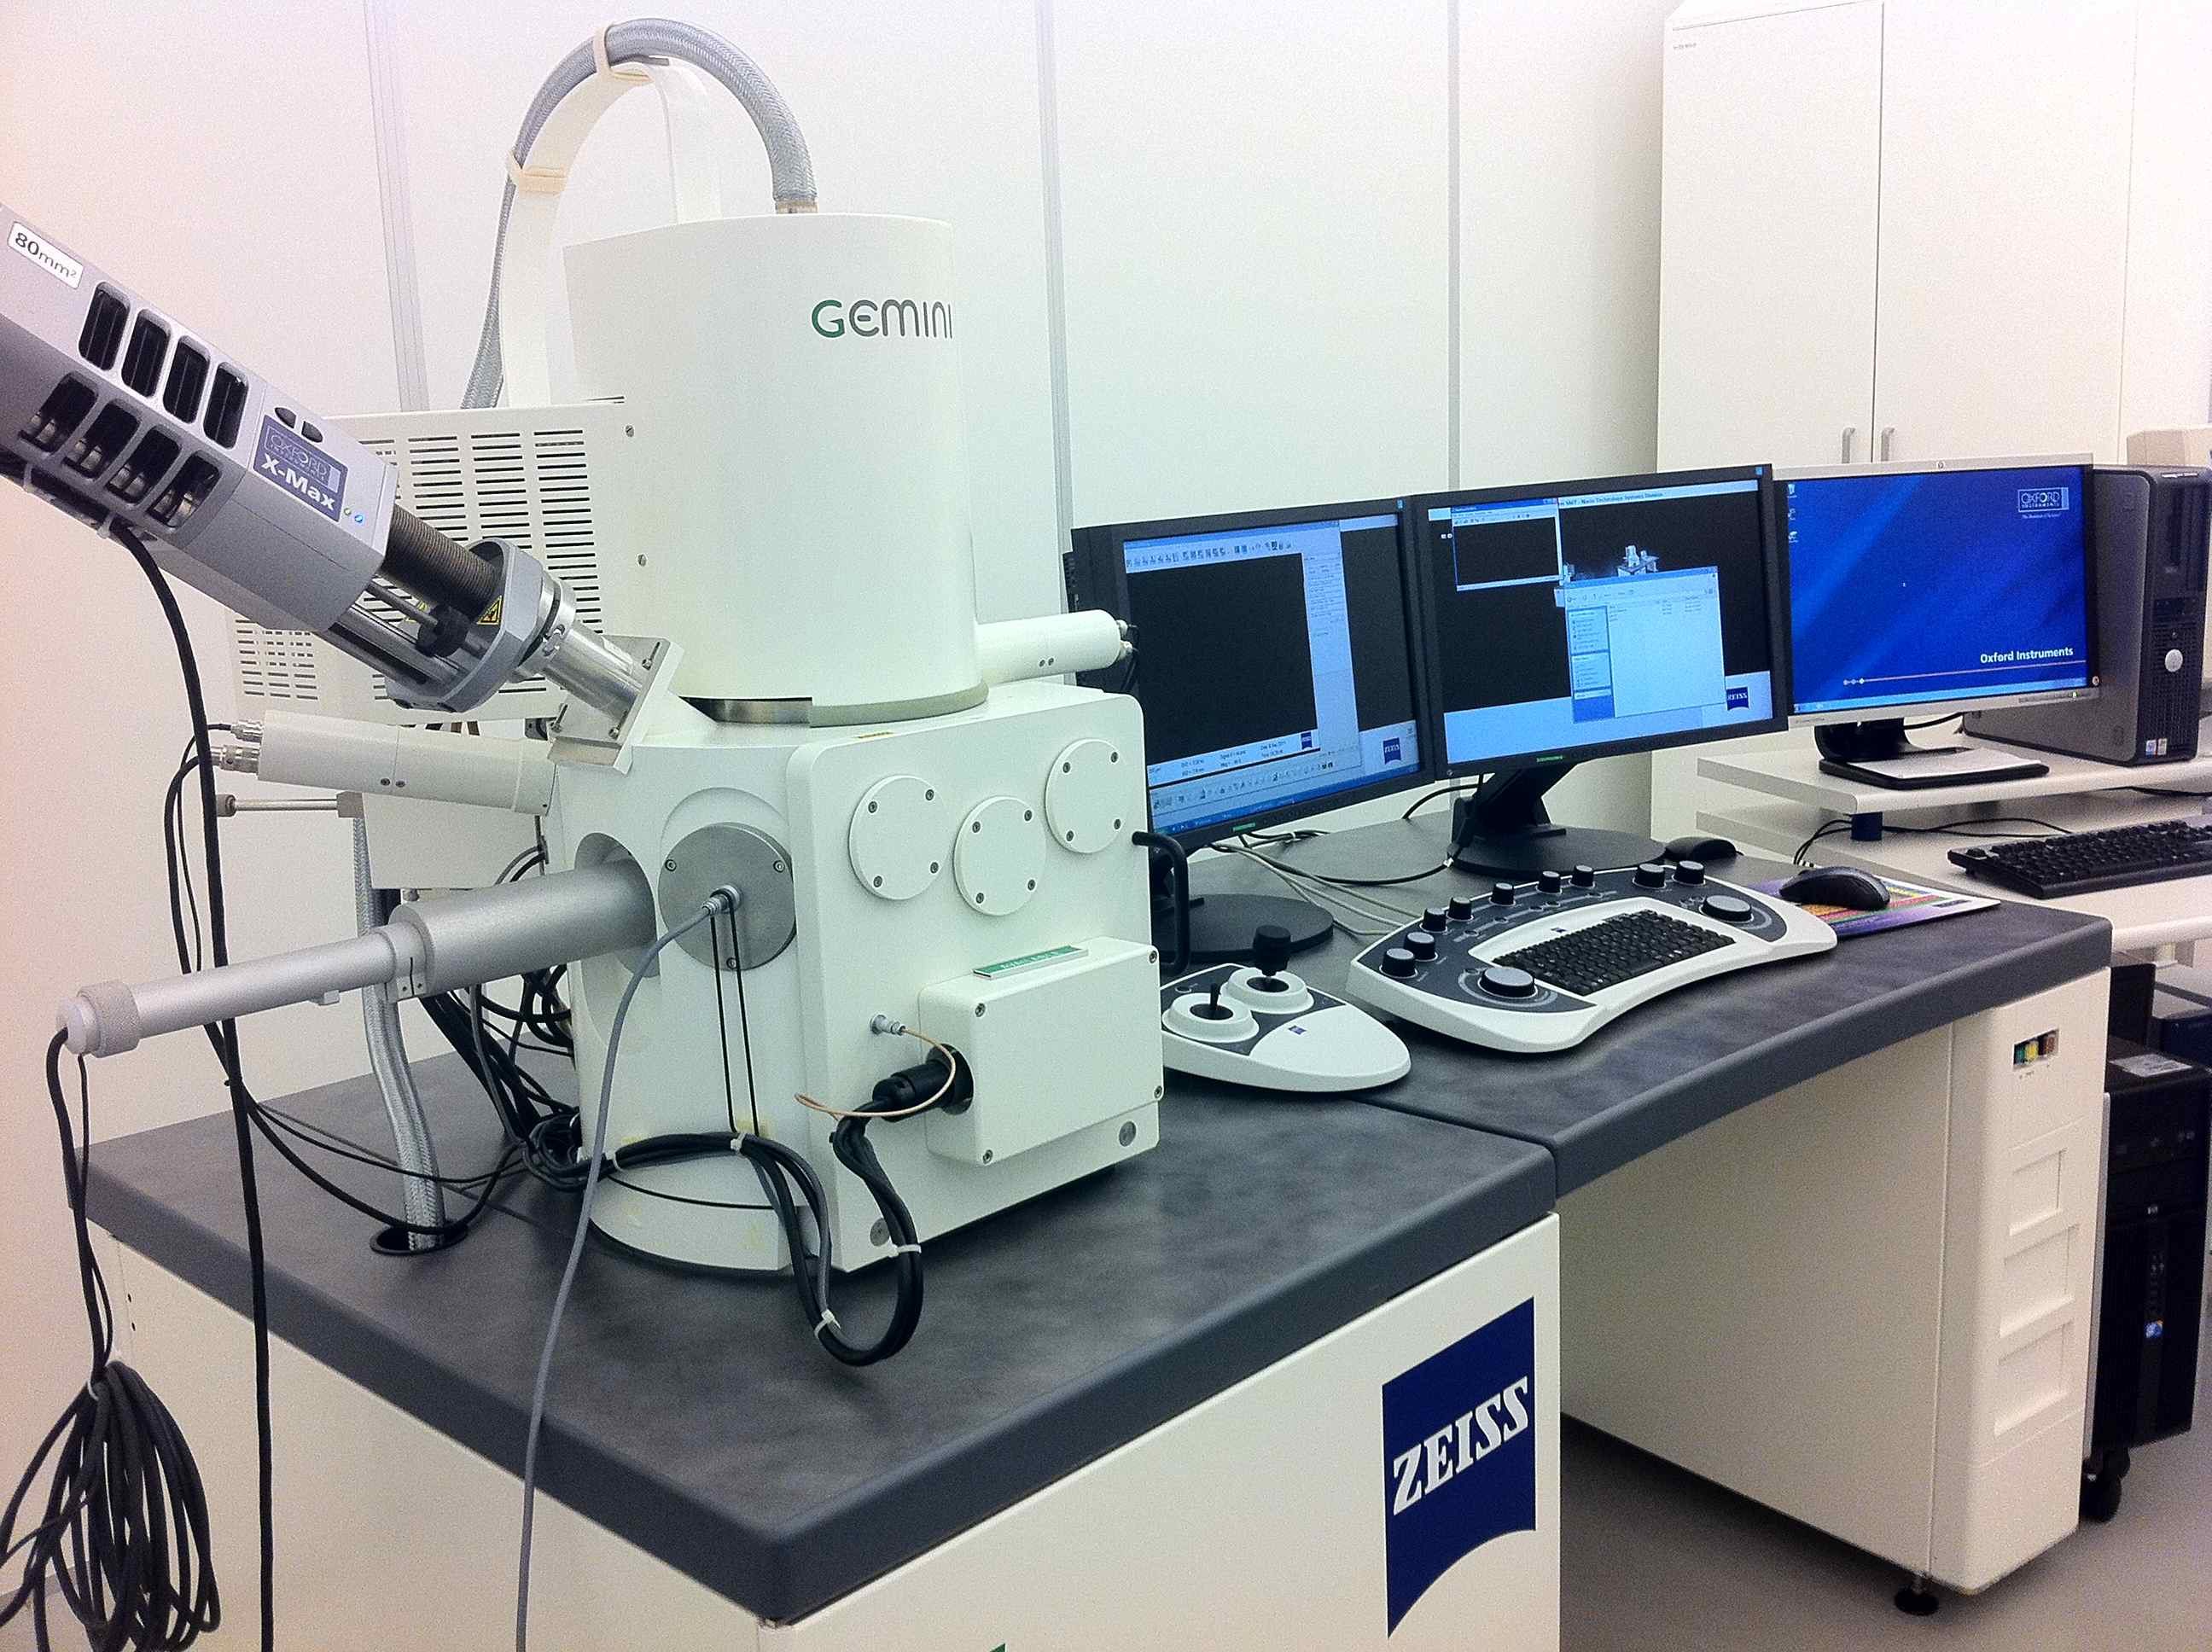 Picture of SEM/EDS - 1550